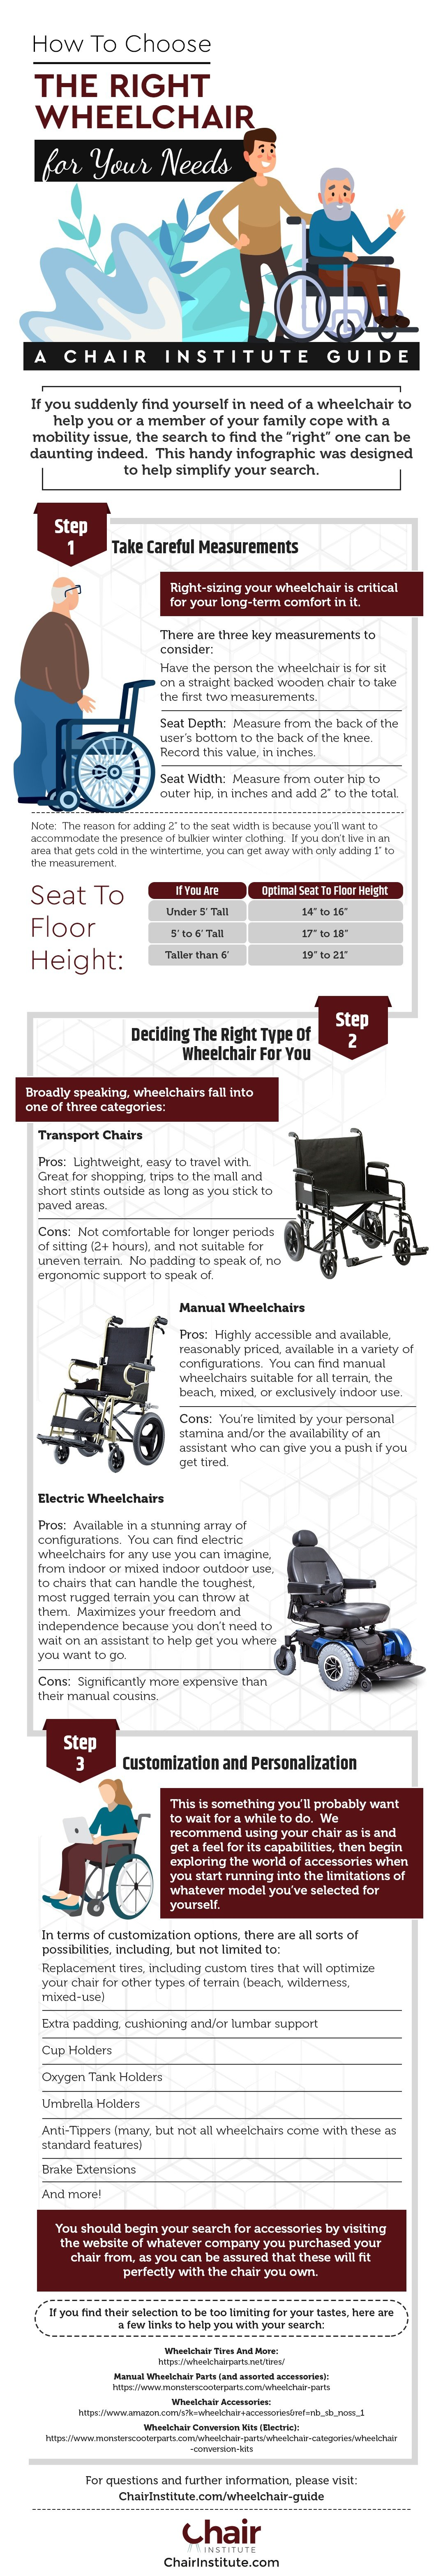 Infographic of How to Choose the Right Wheelchair for Your Needs, by ChairInstitute.com